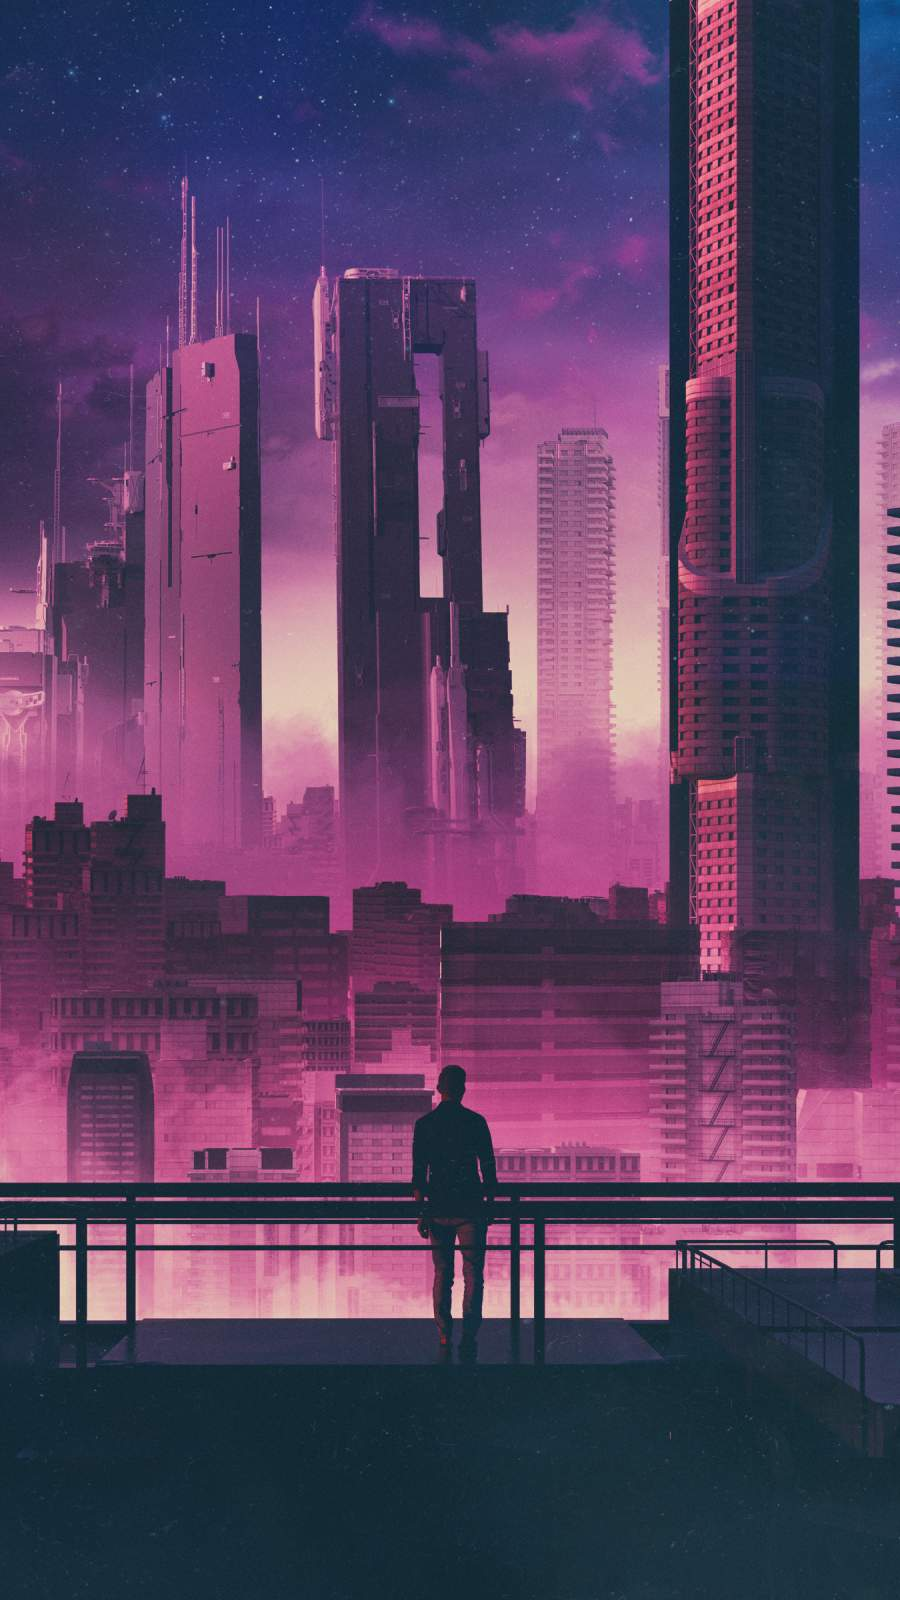 Future City and Man iPhone Wallpaper